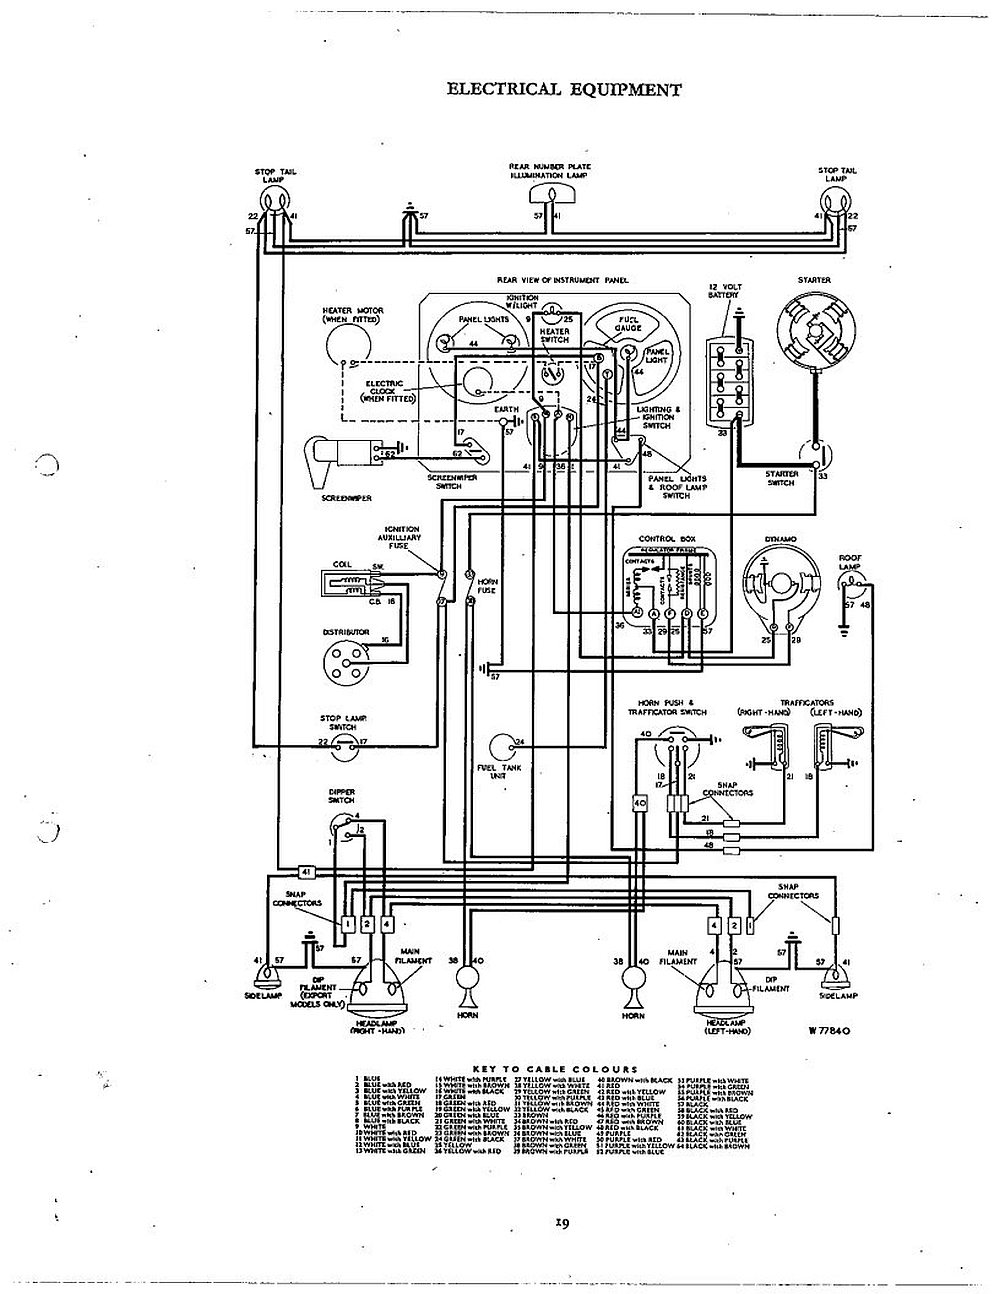 medium resolution of 1973 triumph tr6 wiring diagram wiring diagram for youwiring diagram 1973 triumph stag wiring diagram query